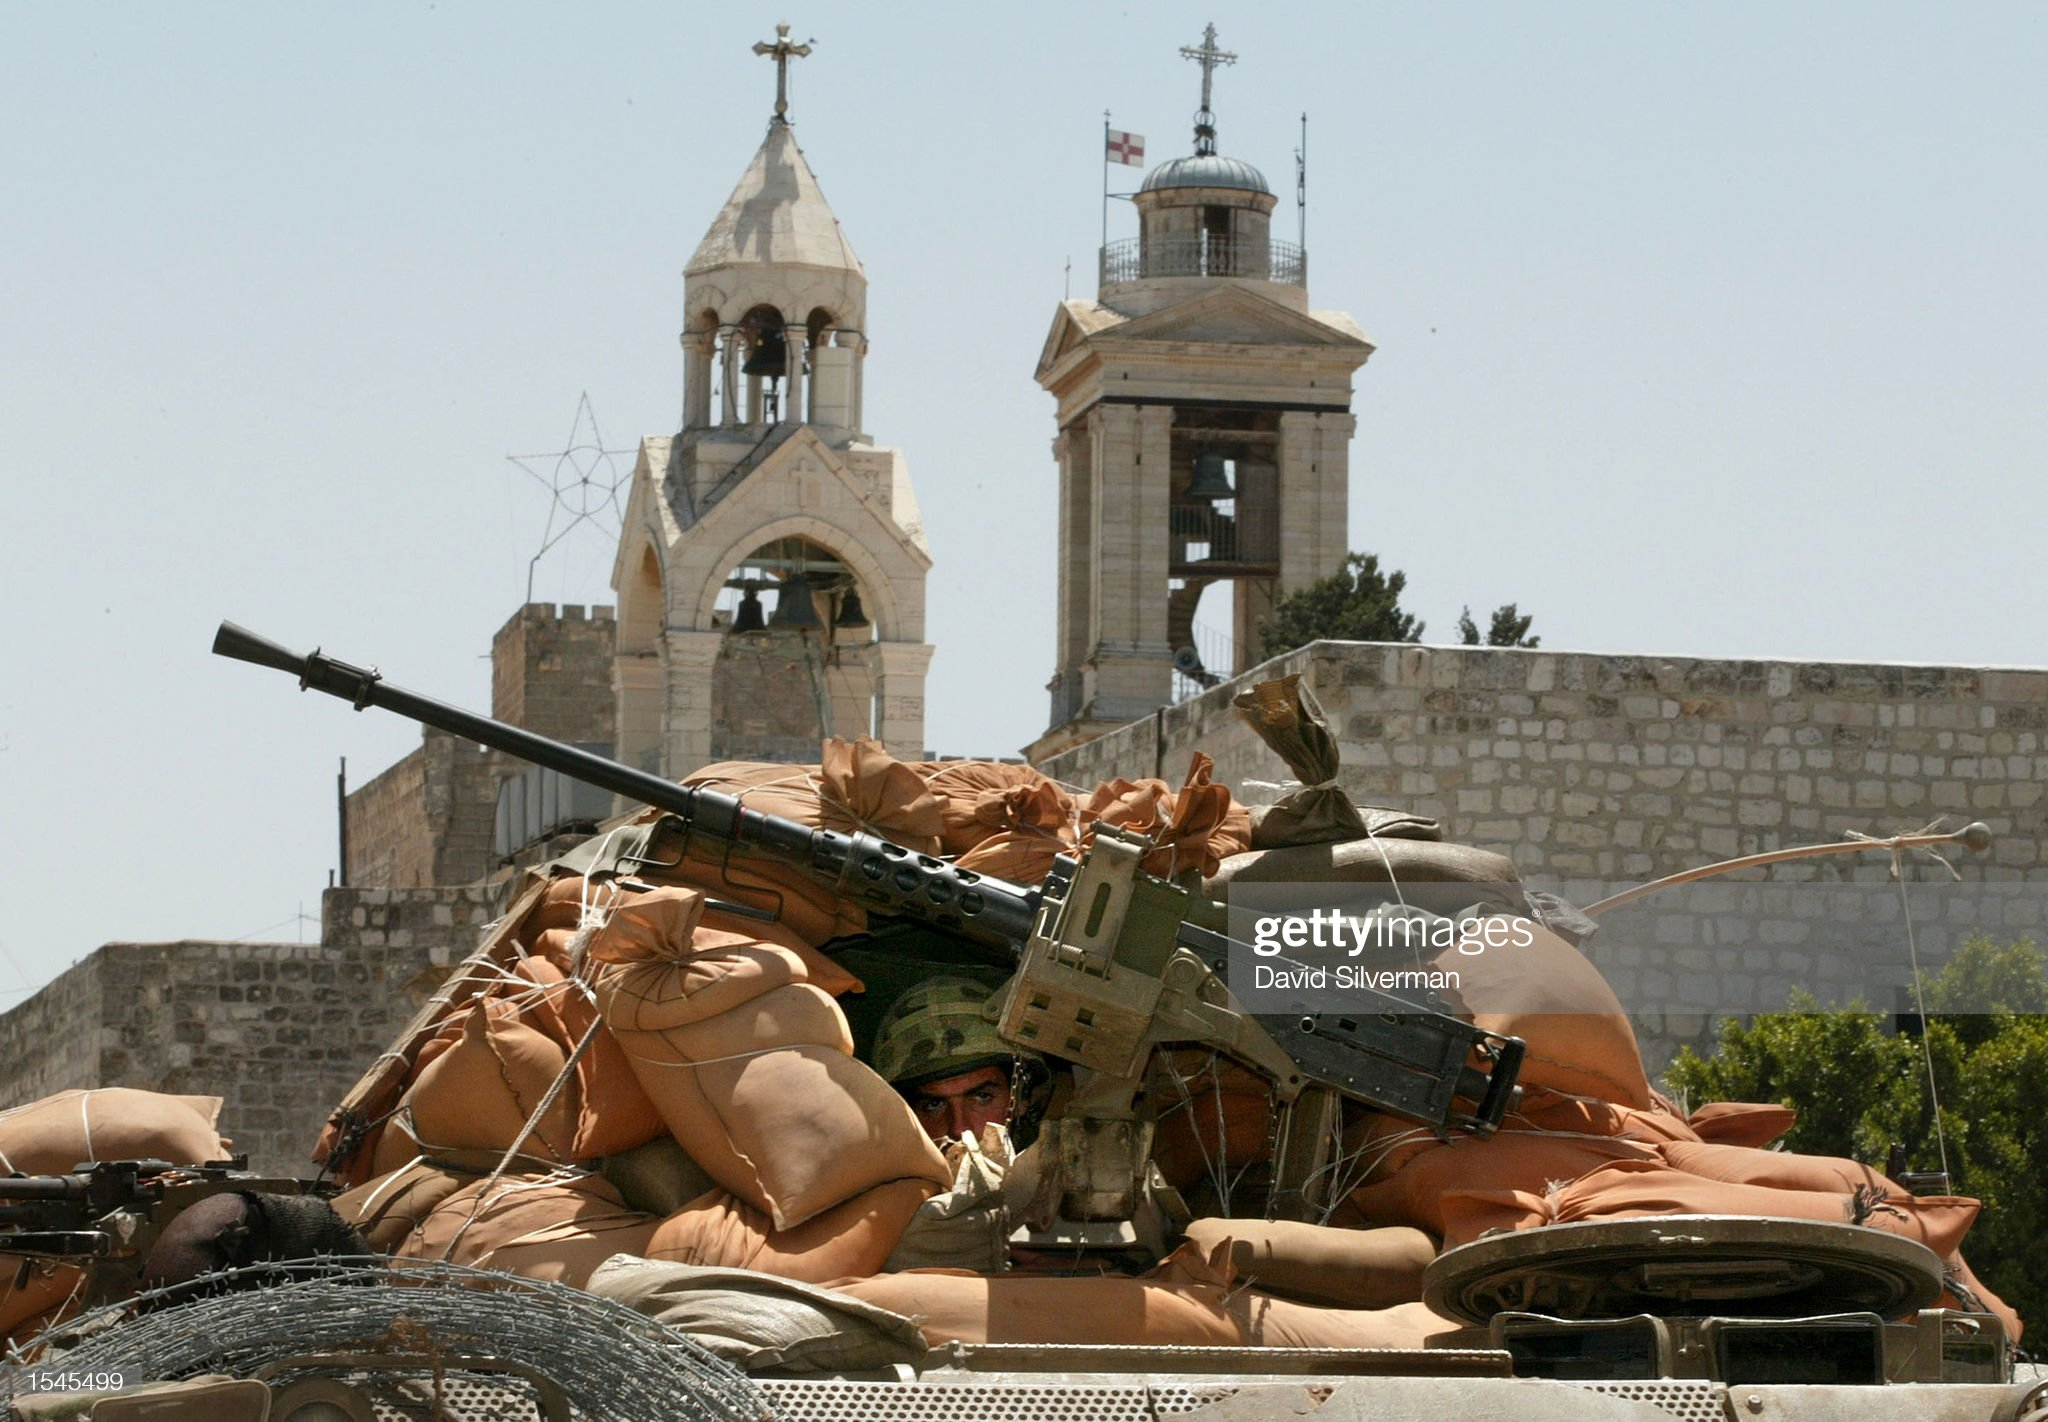 https://media.gettyimages.com/photos/an-israeli-army-armored-perosnnel-carrier-blocks-access-to-manger-picture-id1545499?s=2048x2048